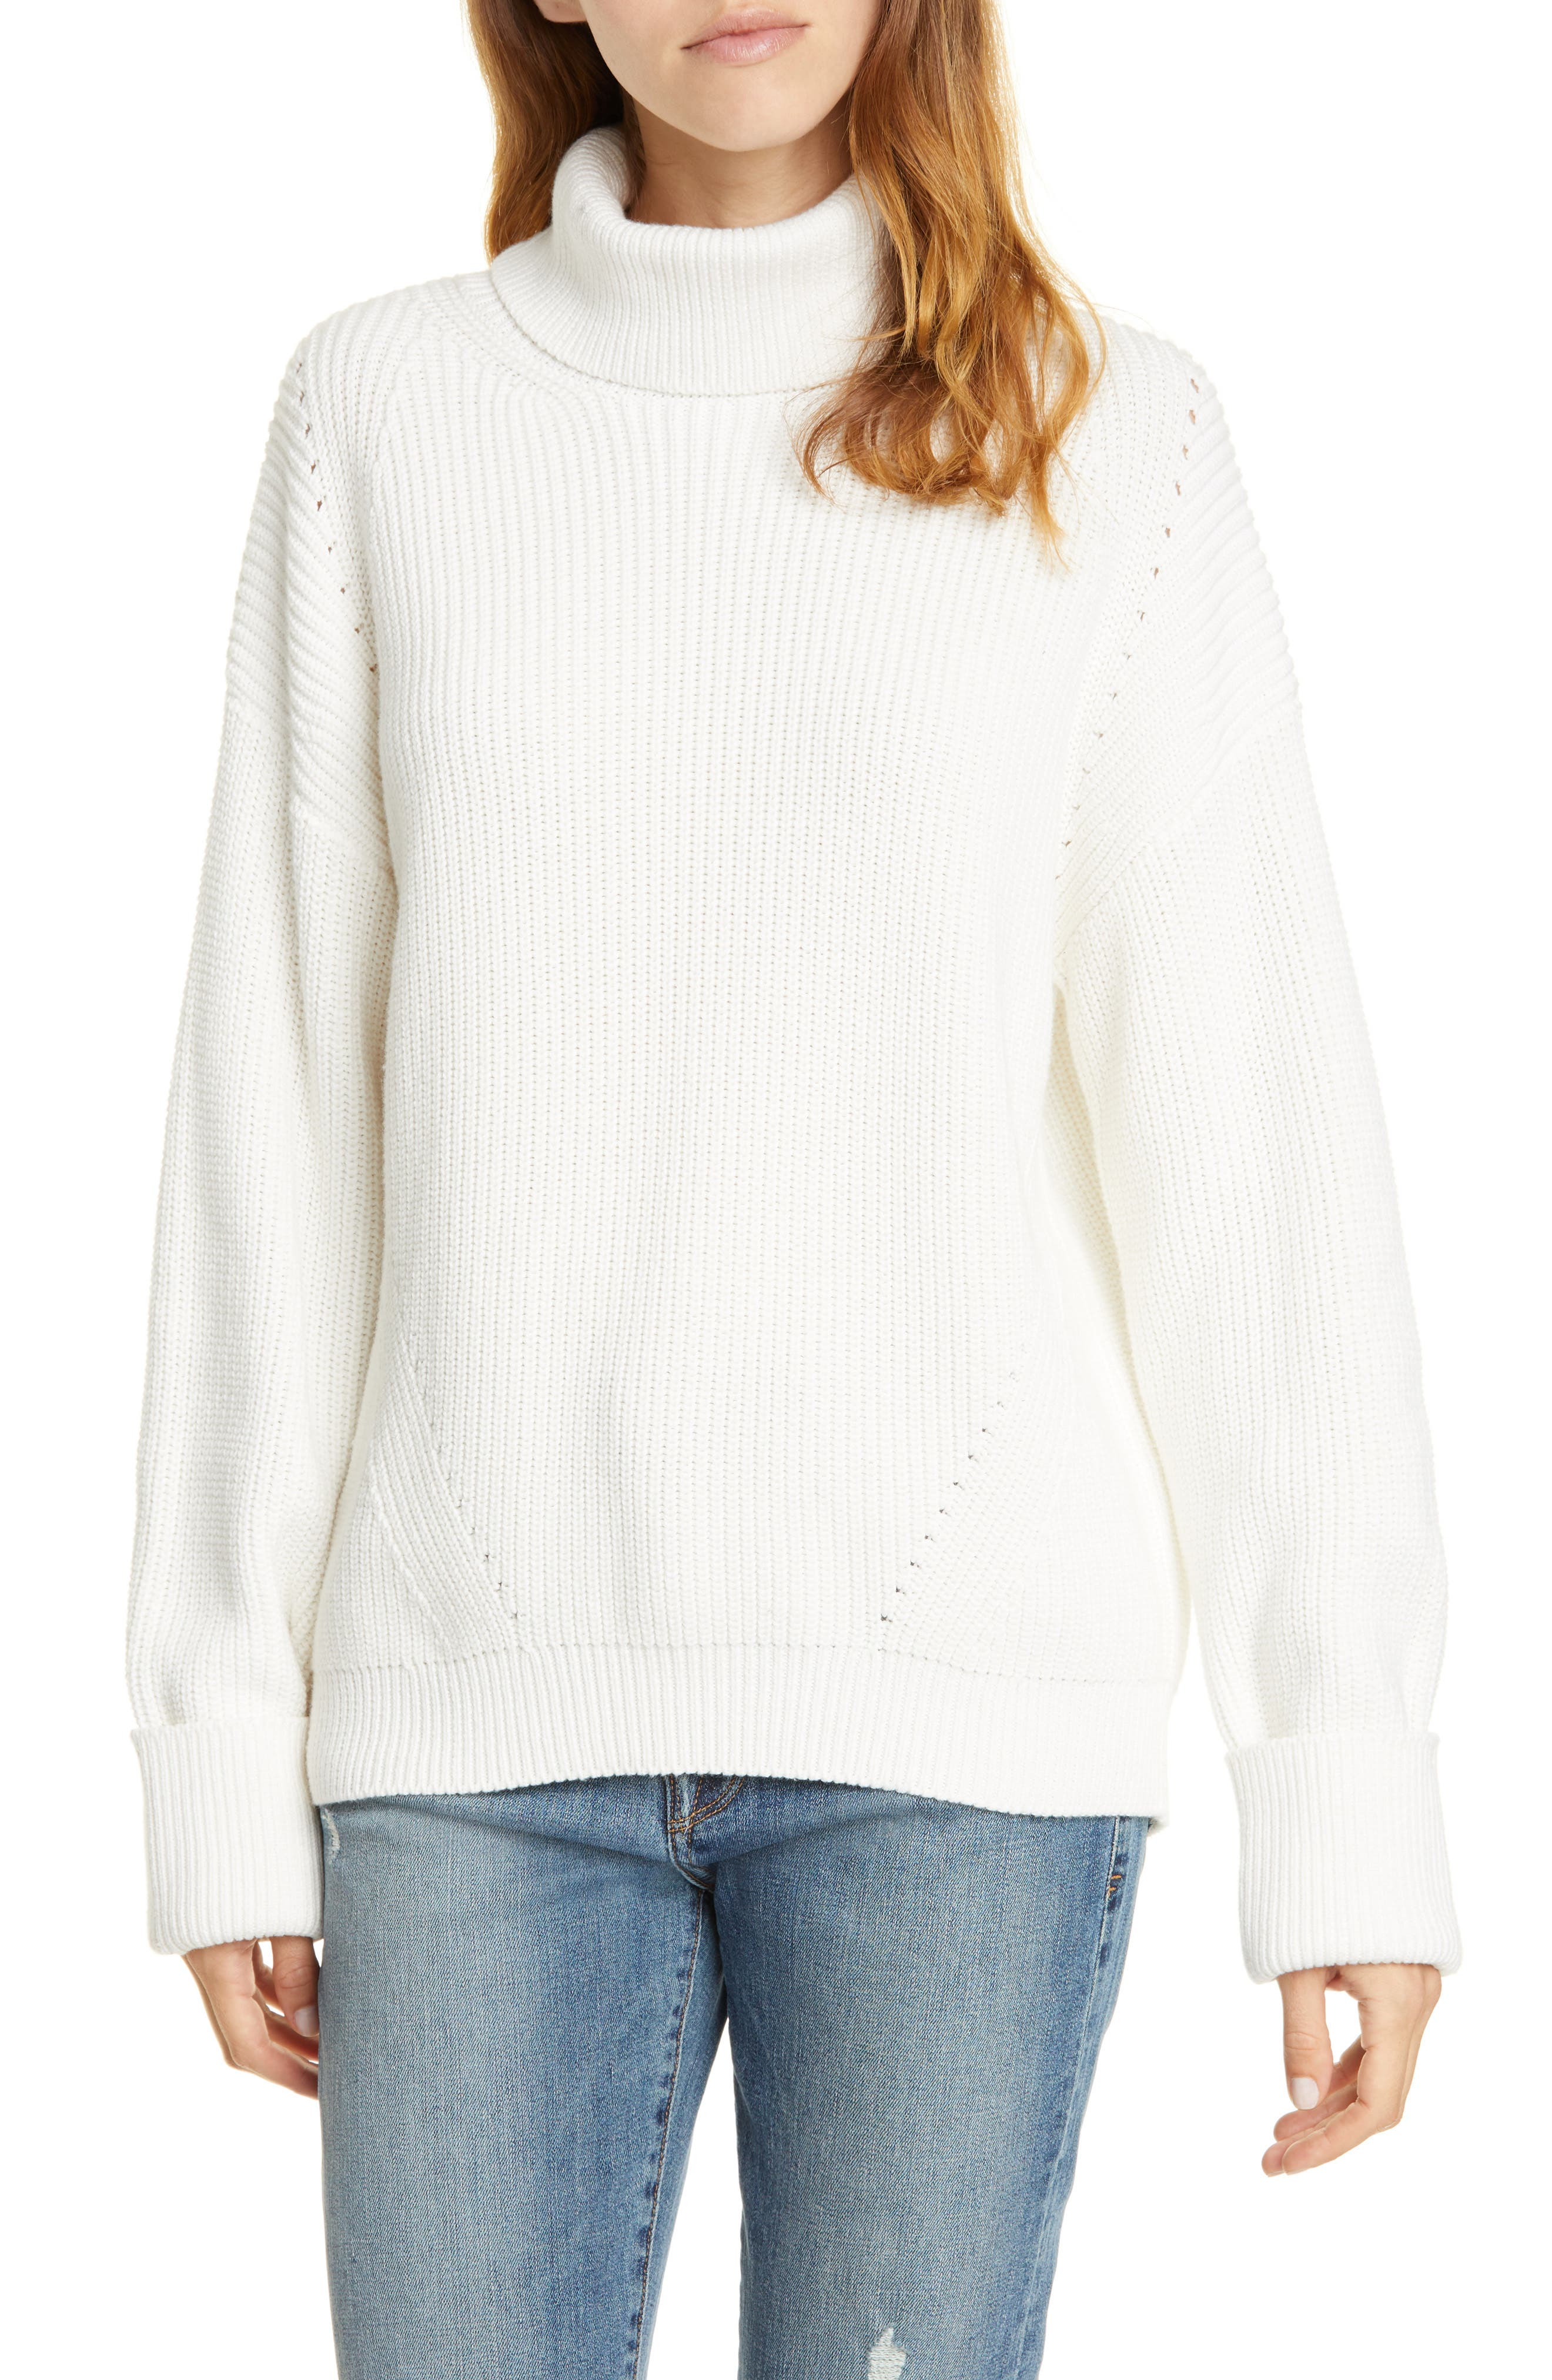 Joie Flats Aleck Turtleneck Sweater